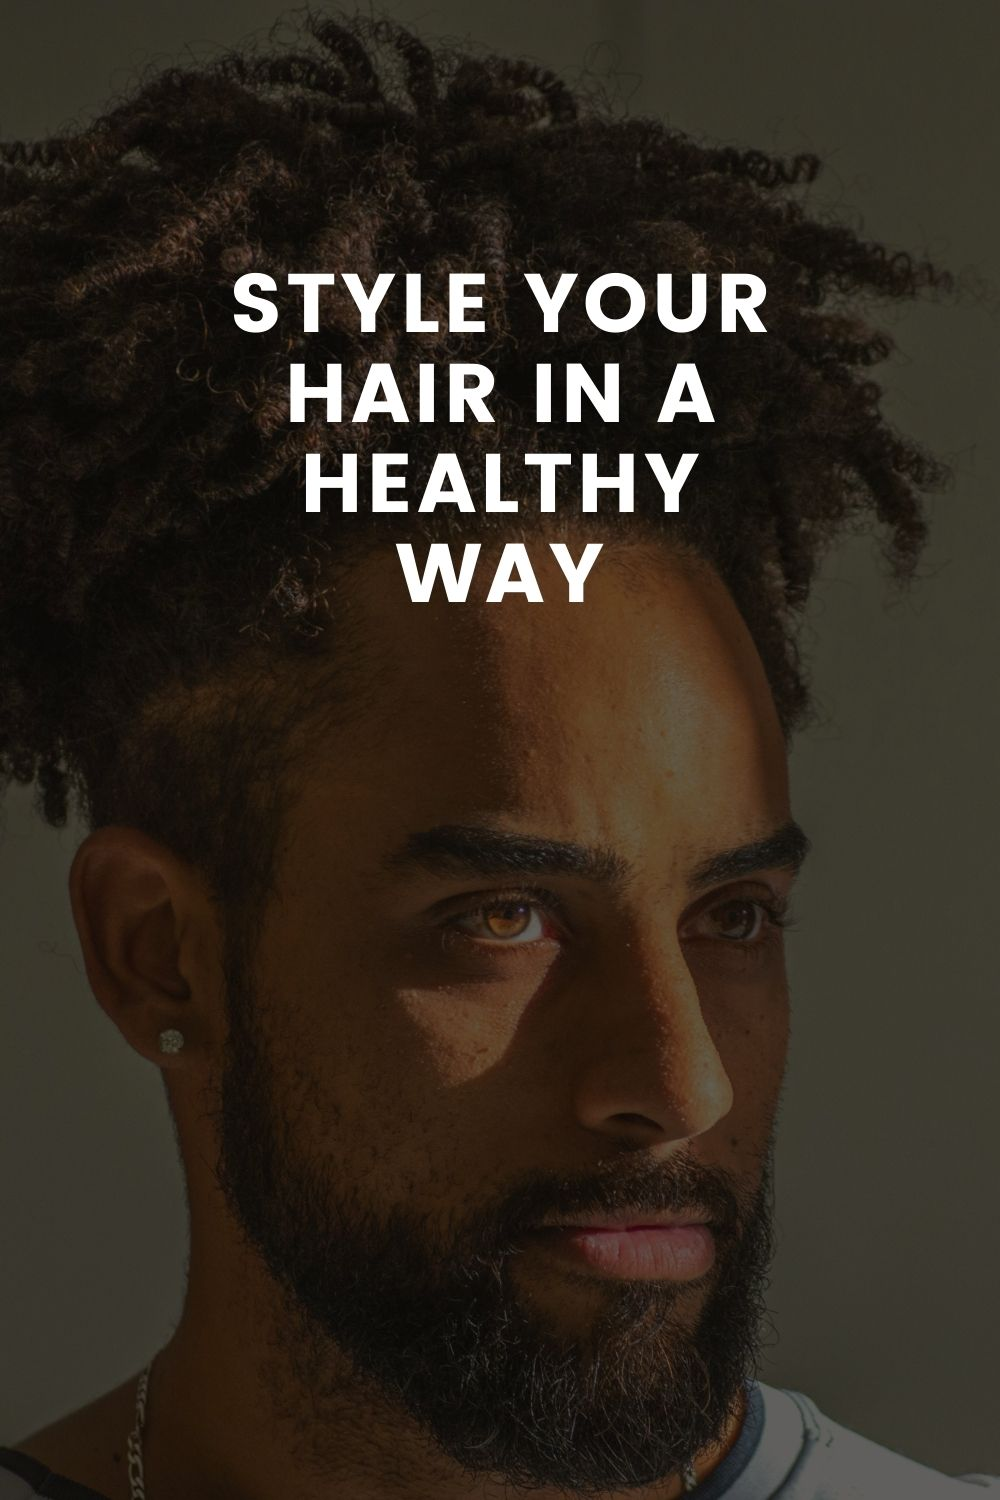 Style Your Hair In A Healthy Way